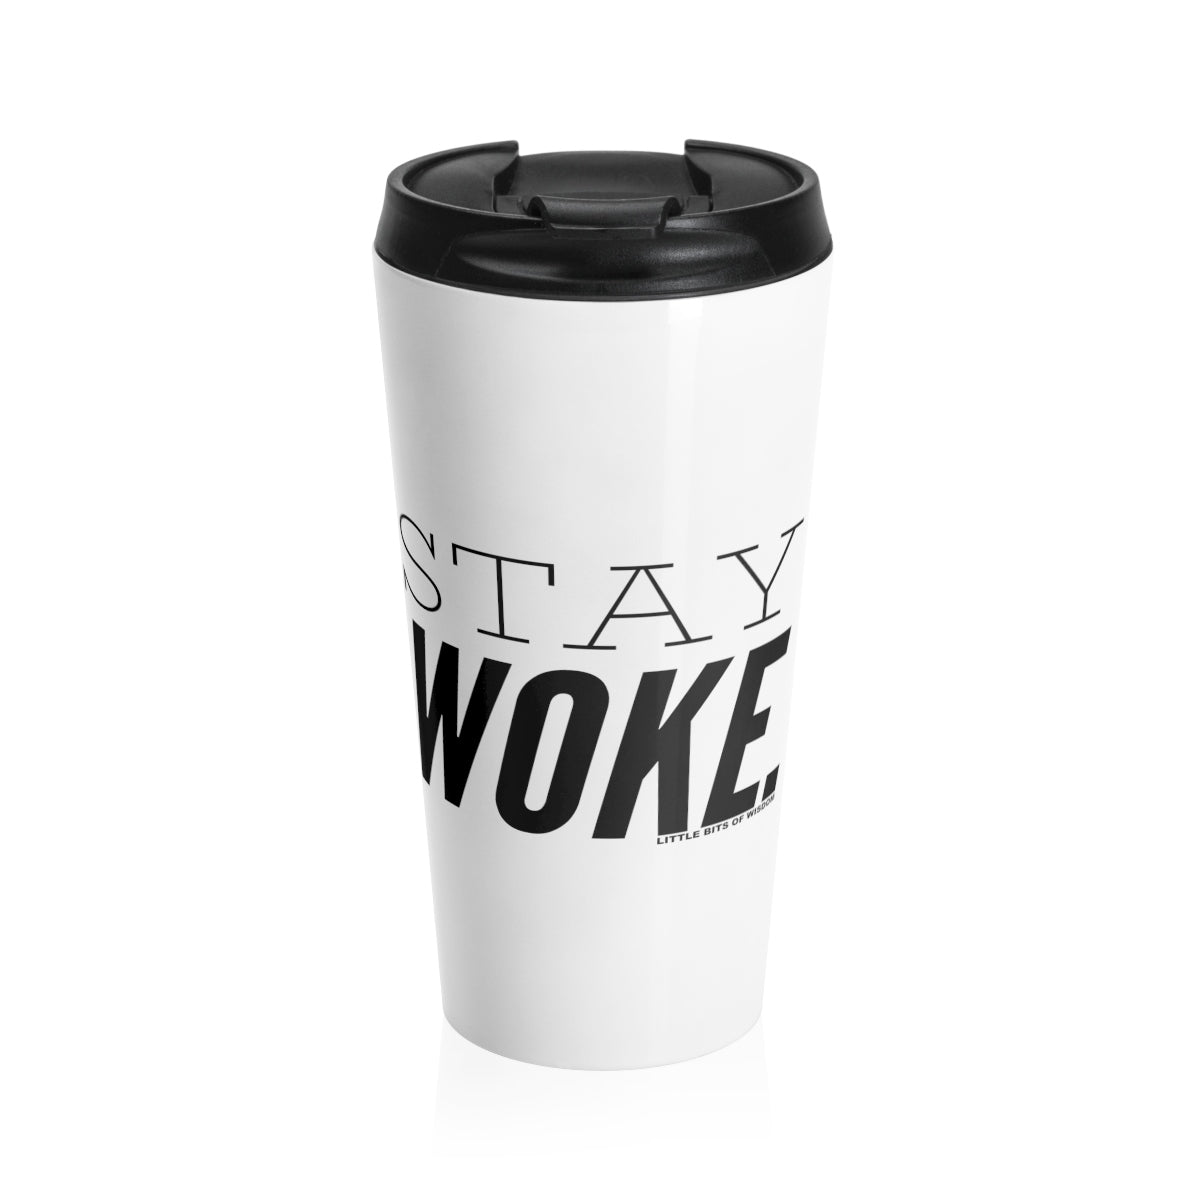 Stay Woke. Stainless Steel Travel Mug